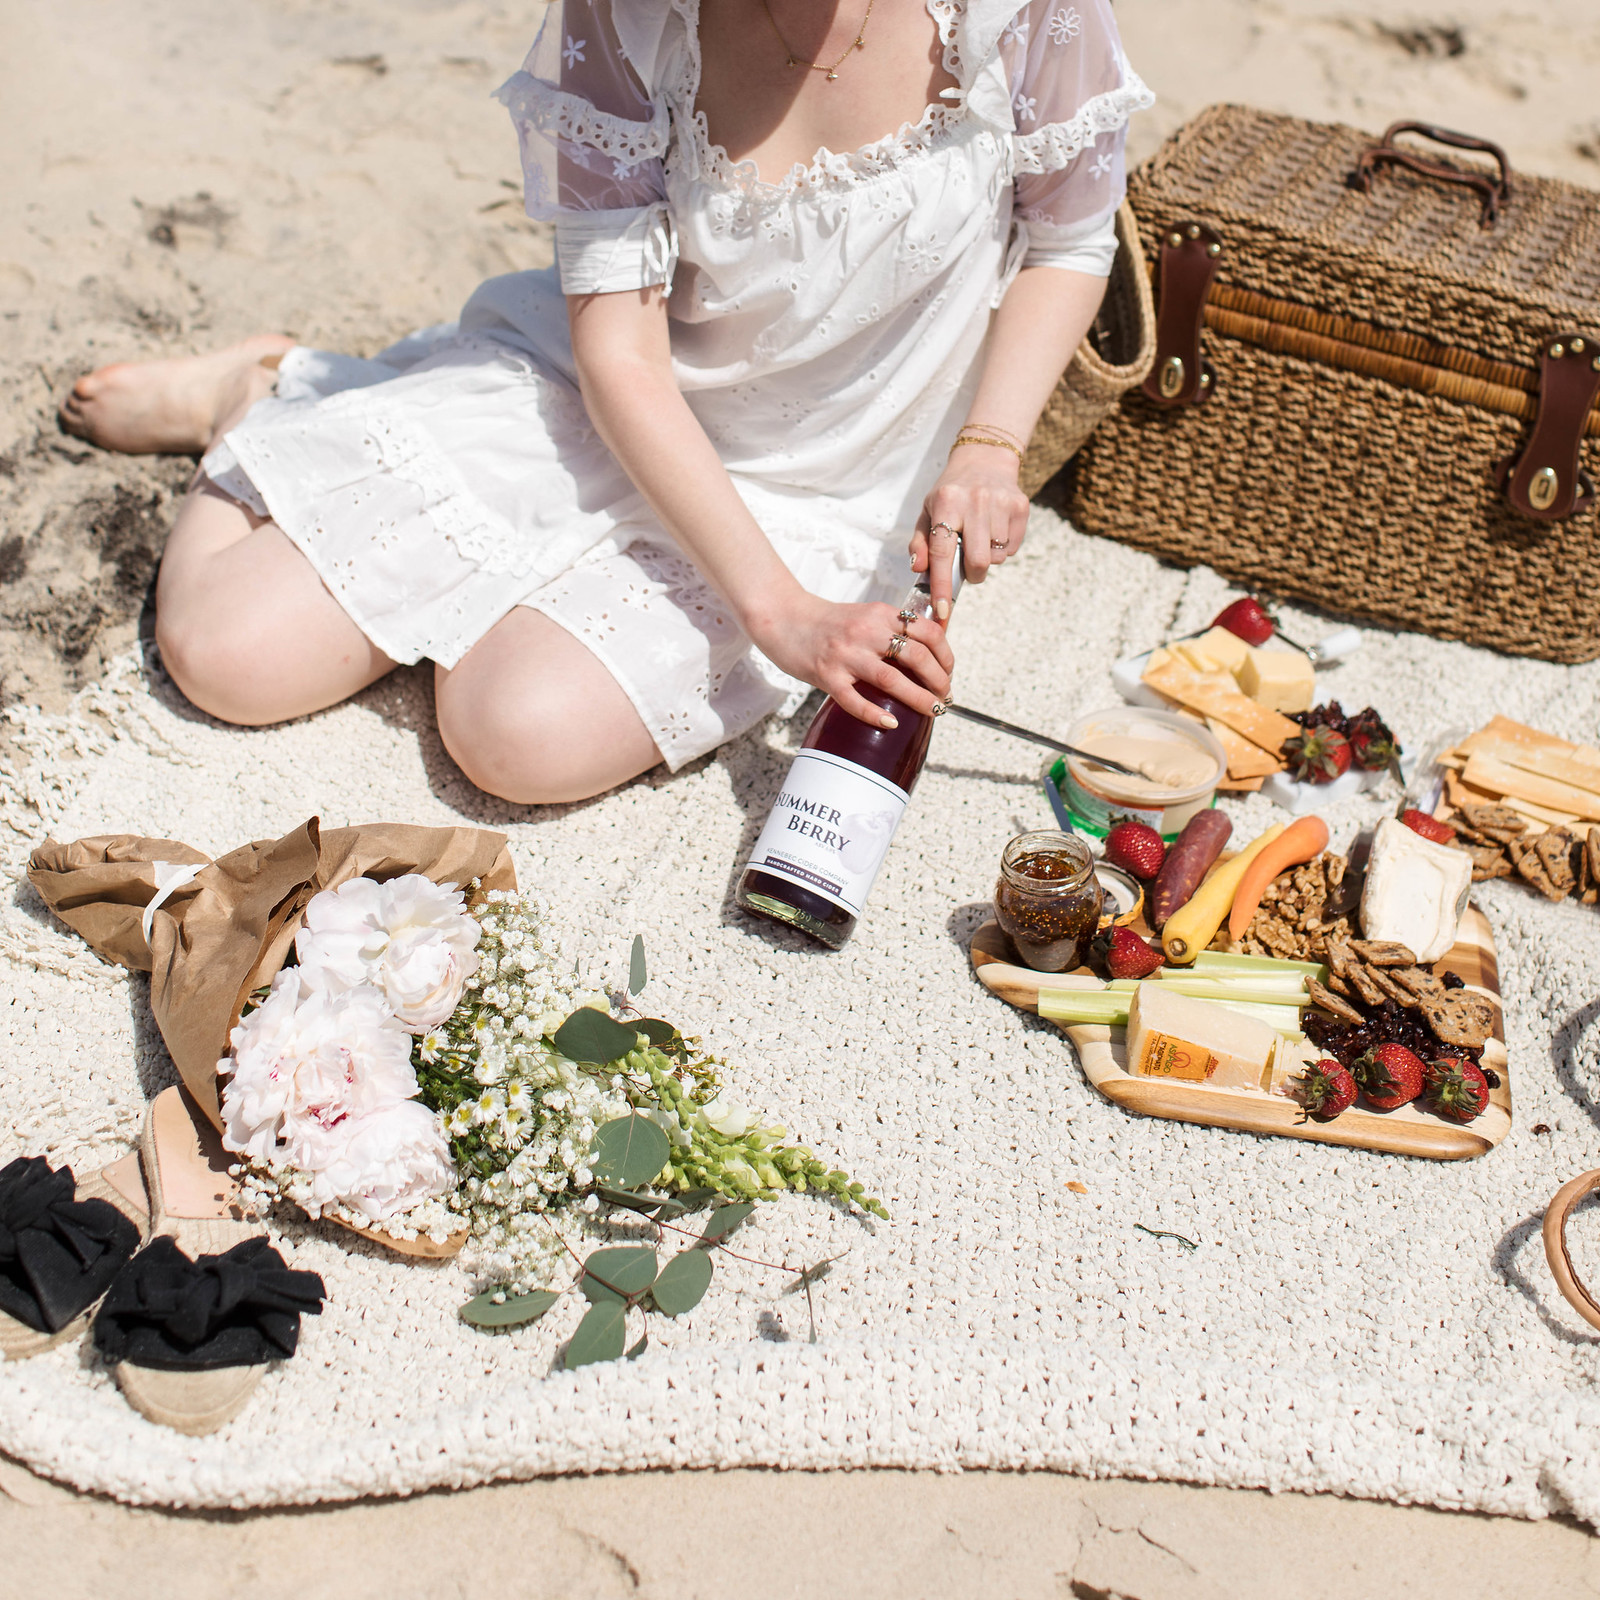 Summer Beach Picnic with peonies a vintage picnic basket cider wine a cheese board and crudites on juliettelaura.blogspot.com